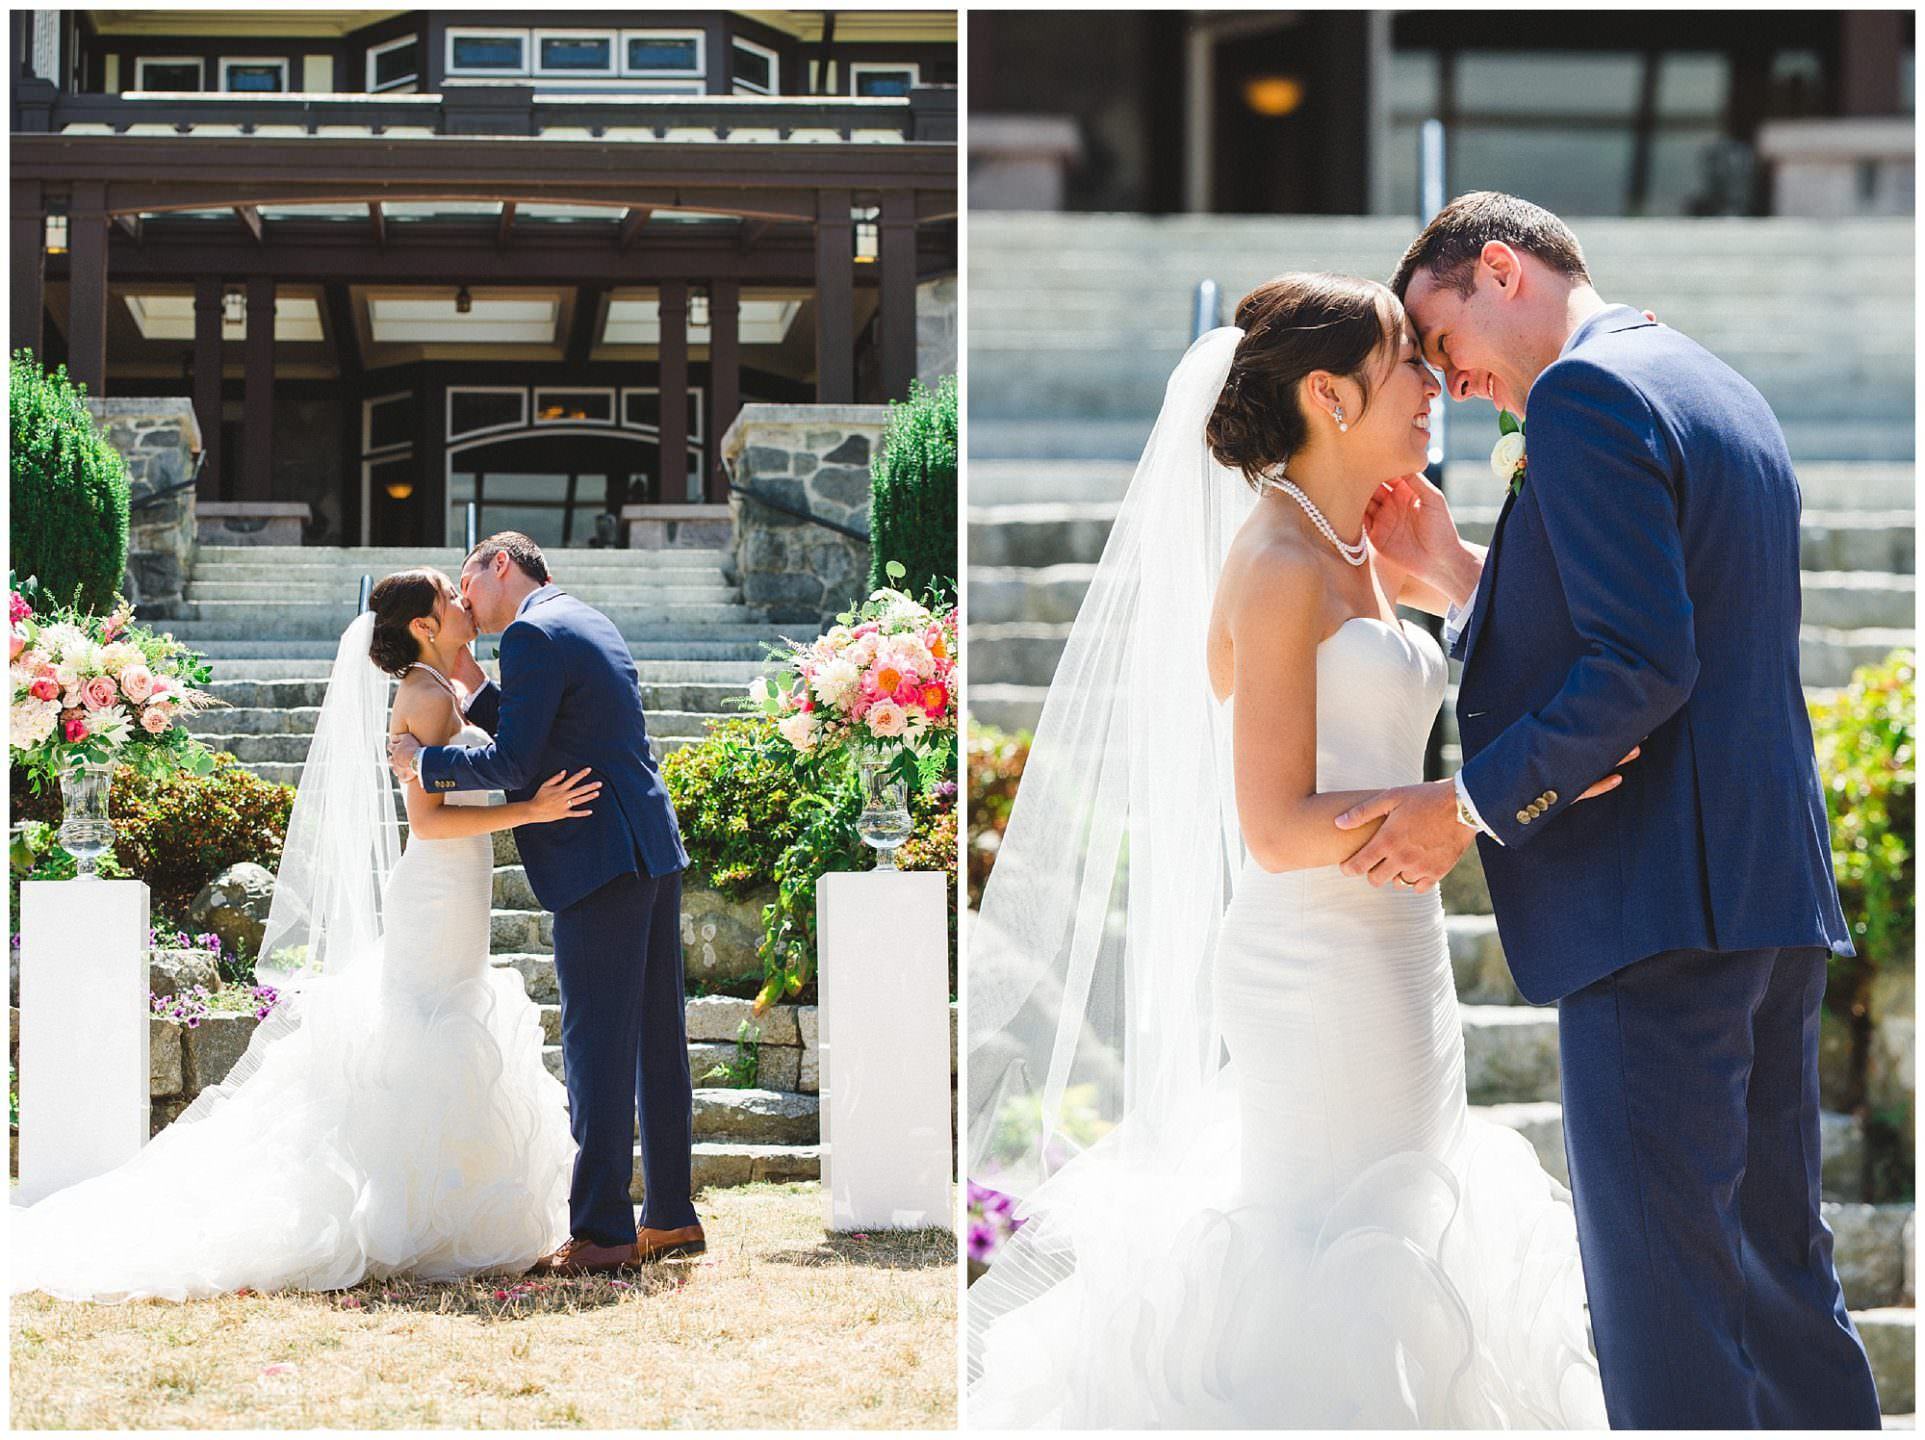 CecilGreenParkhouseWedding_Vancouver_RonnieLeeHillPhotography_1049